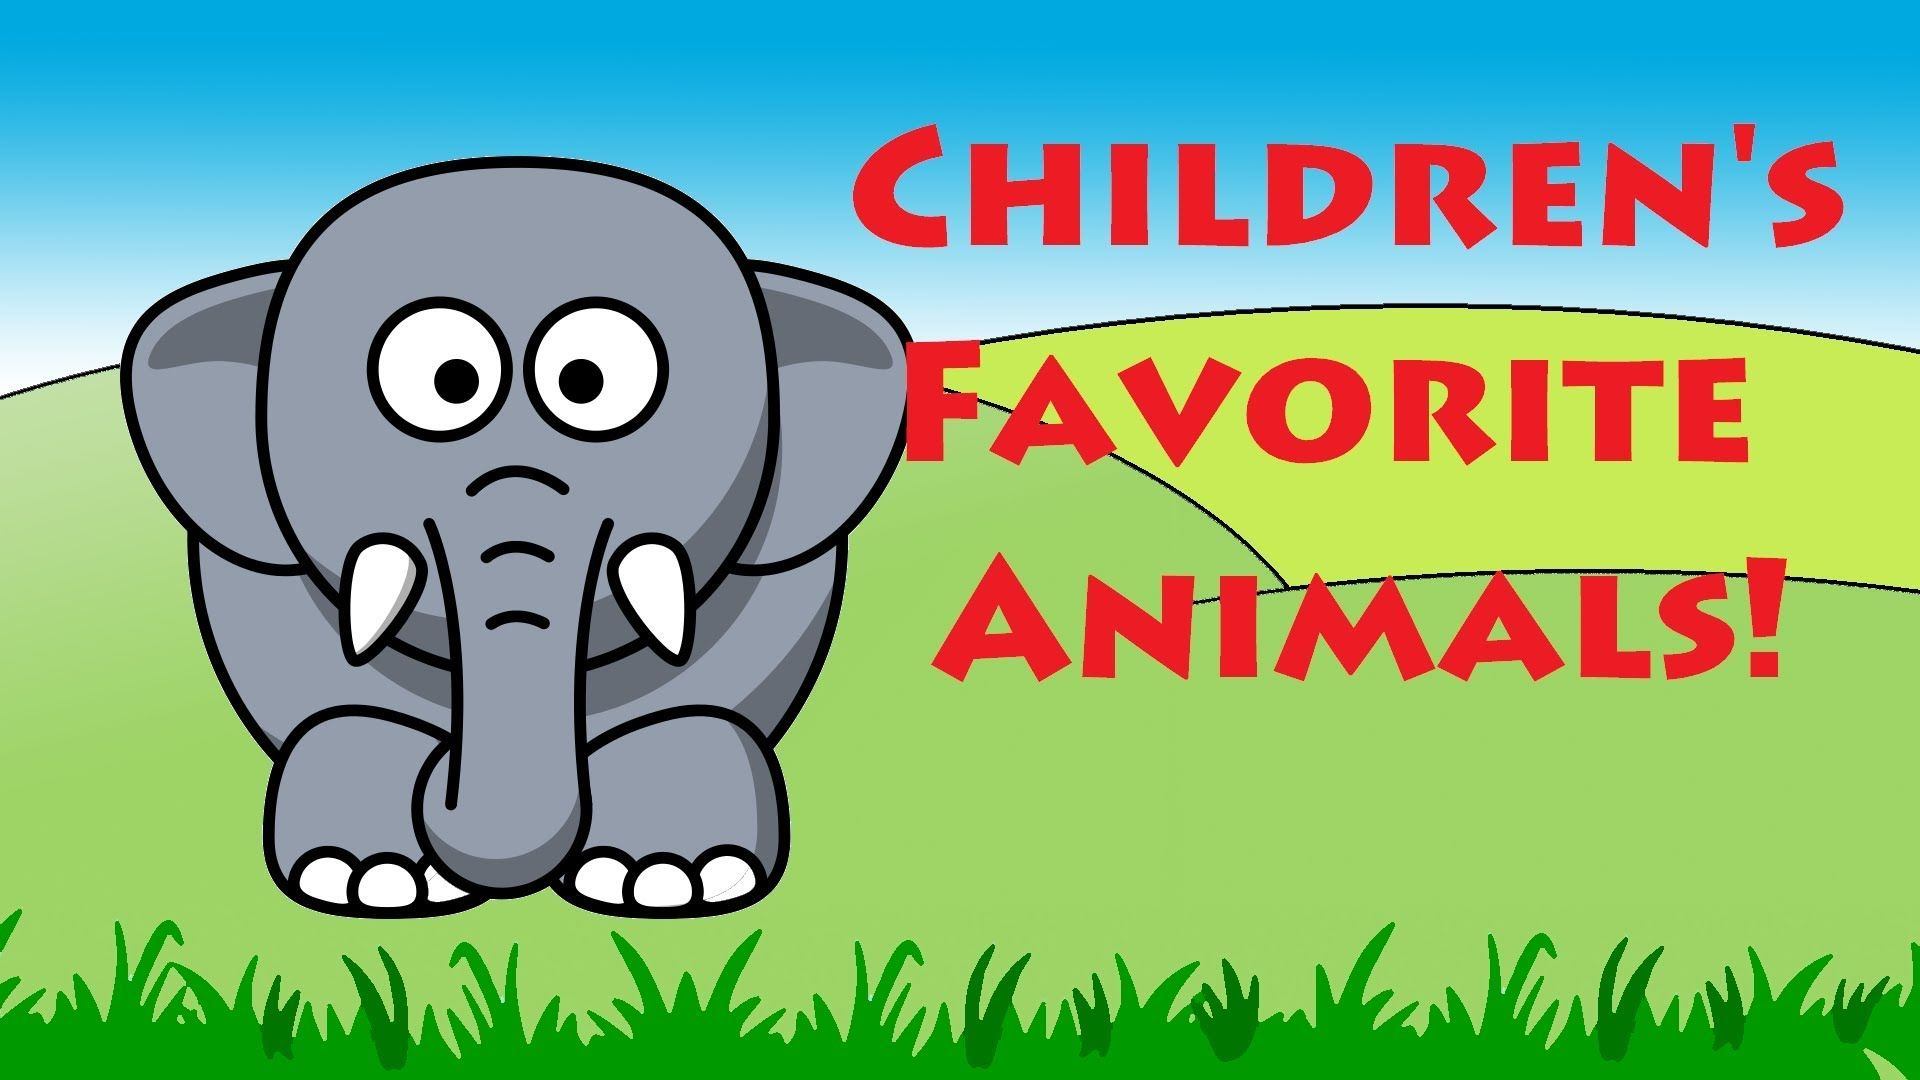 Children S Favorite Animals Learning English Animal Names Kids Learn Animal Pictures For Kids Kids Learning Videos Animal Learning